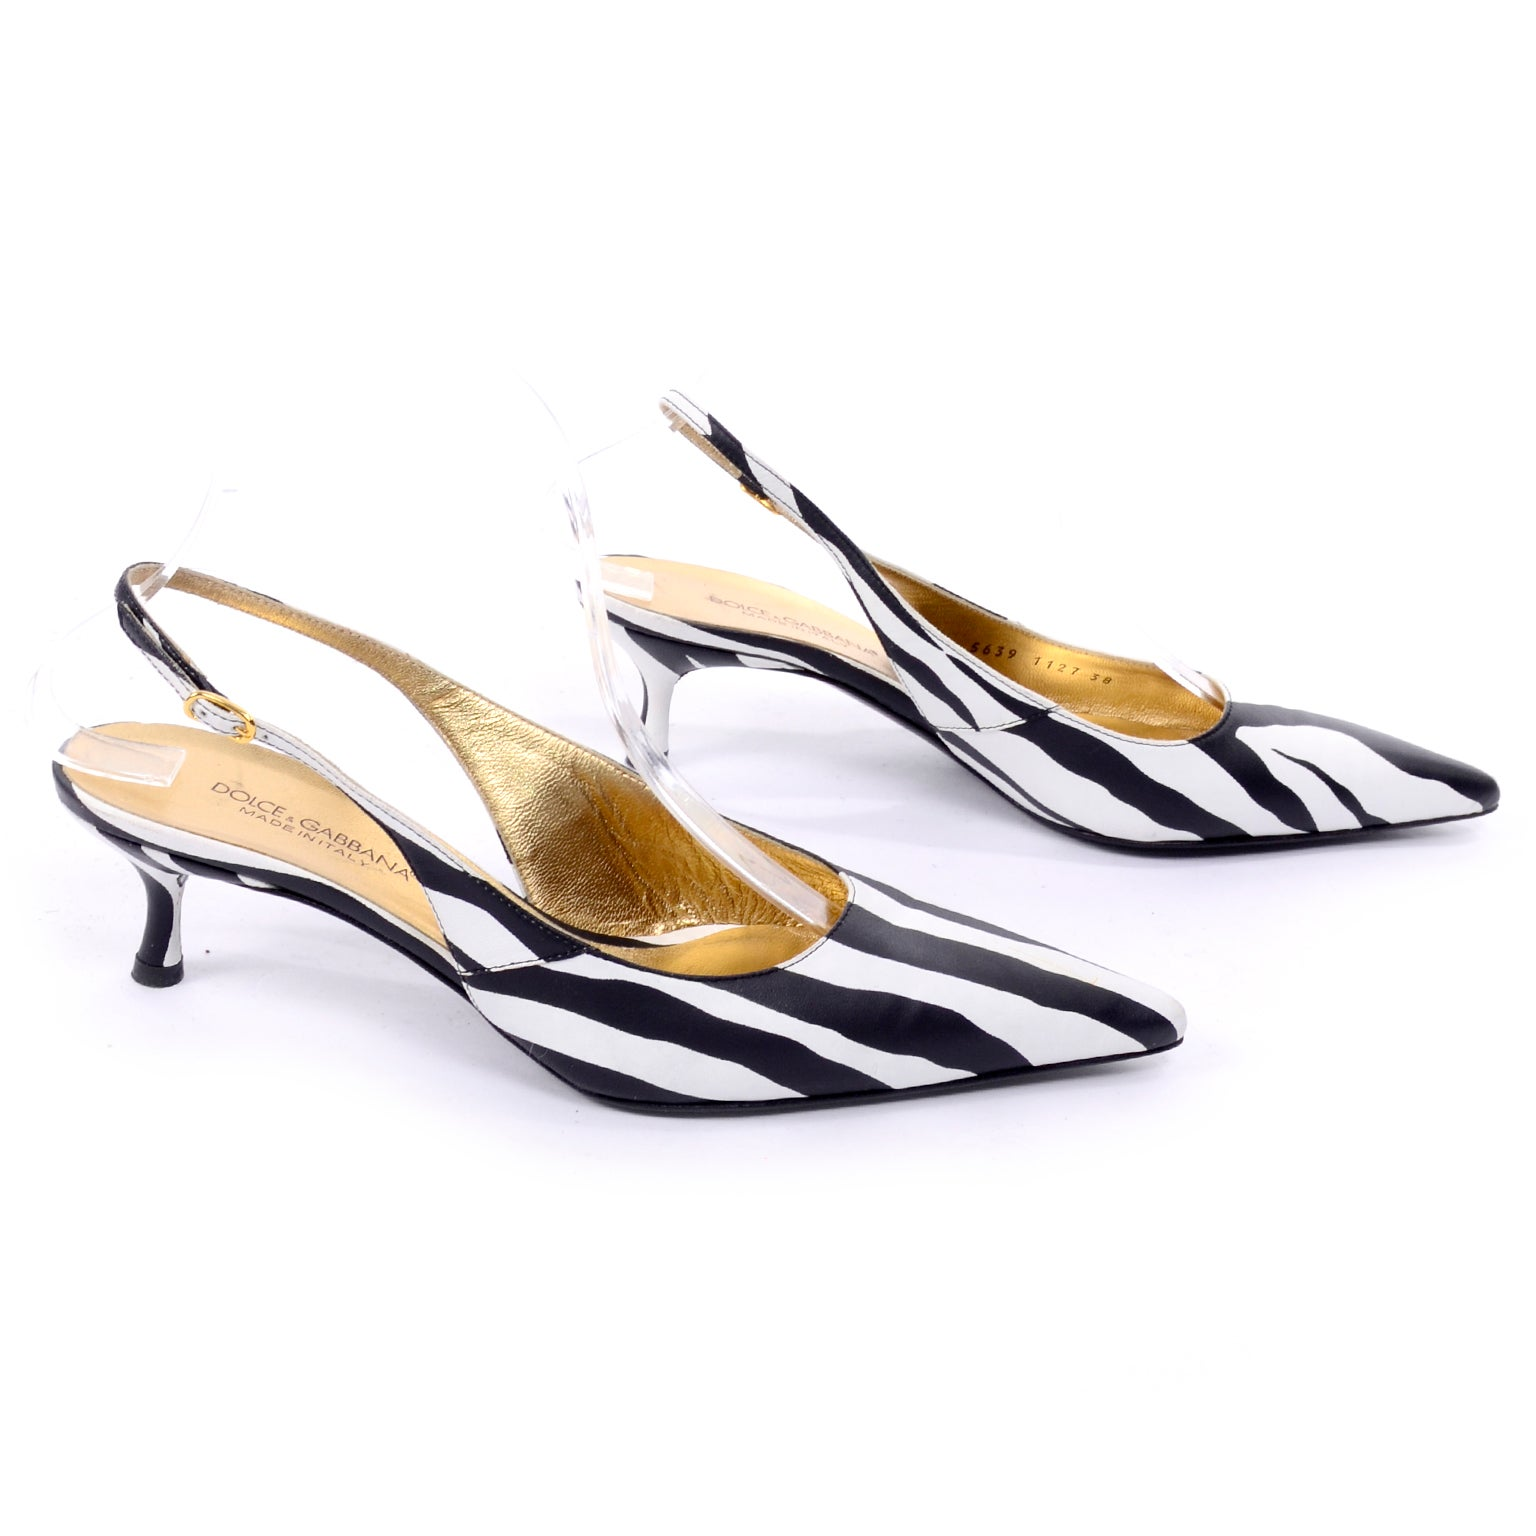 988f2774d12 Dolce and Gabbana Zebra Stripe Shoes Vintage Sling Back Kitten Heels in  Size 38 For Sale at 1stdibs